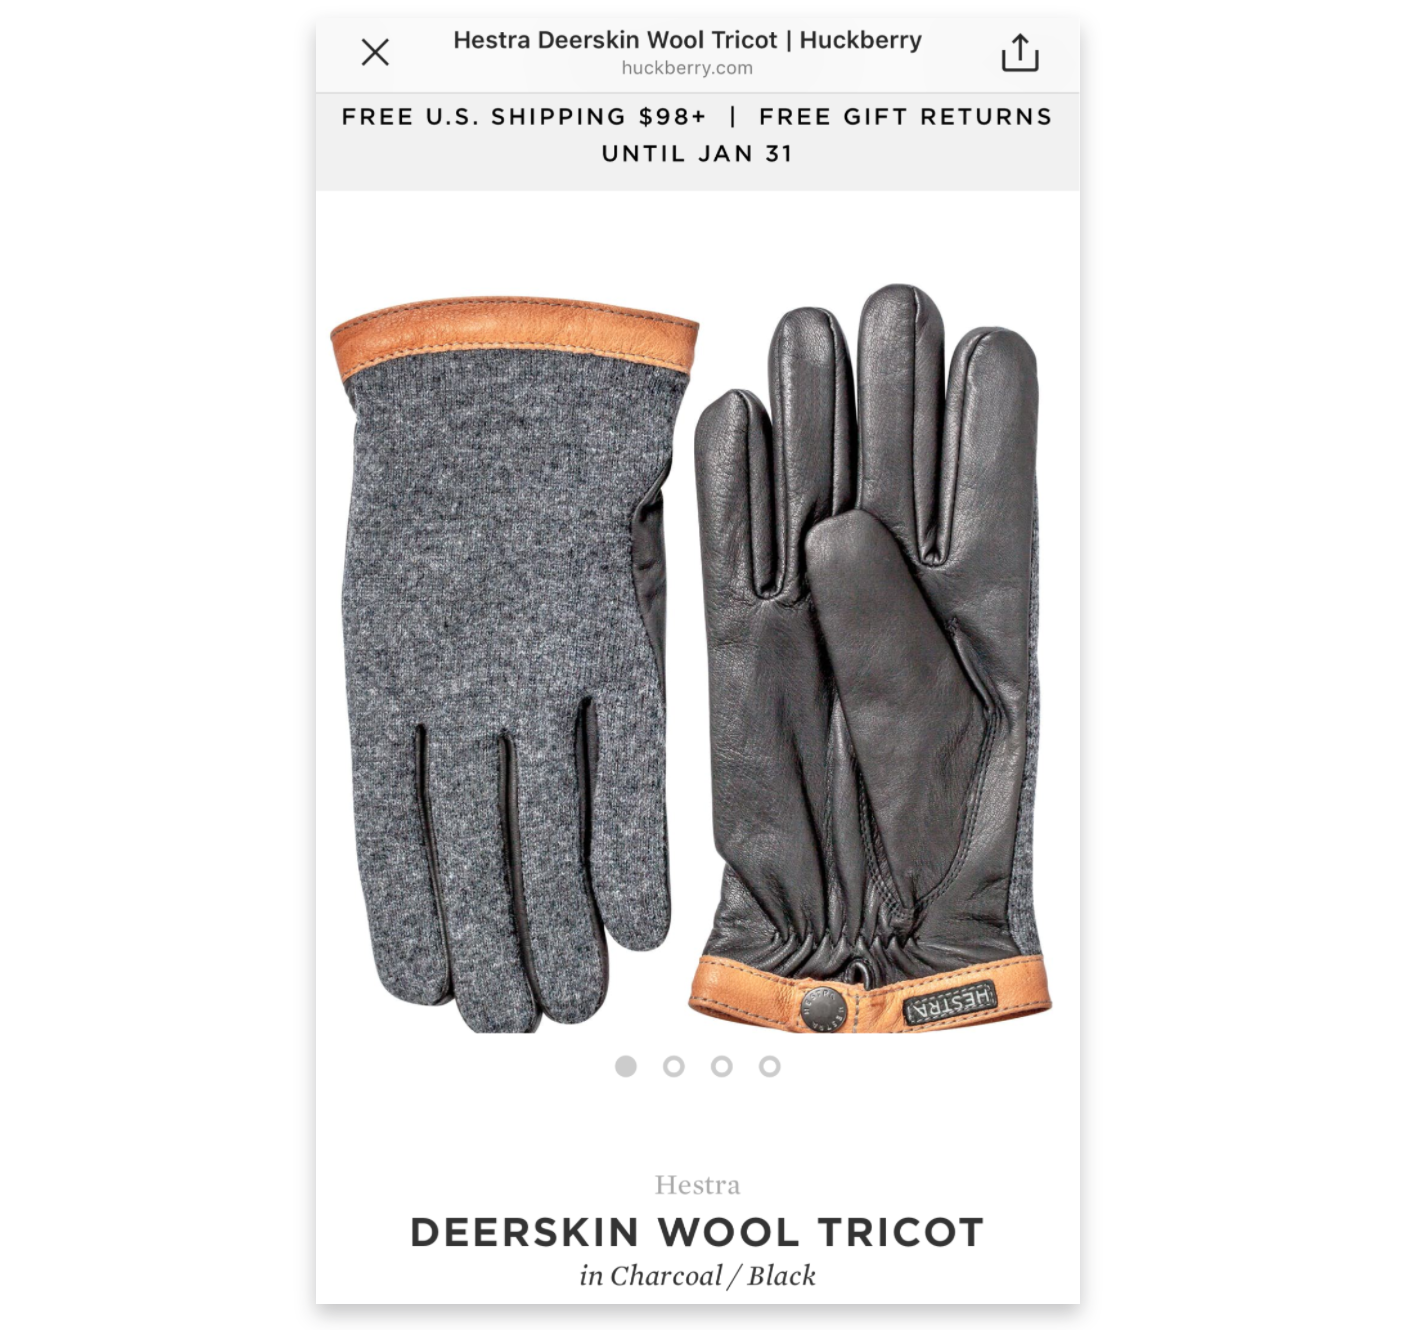 Screenshot showing gloves for sale by Huckberry